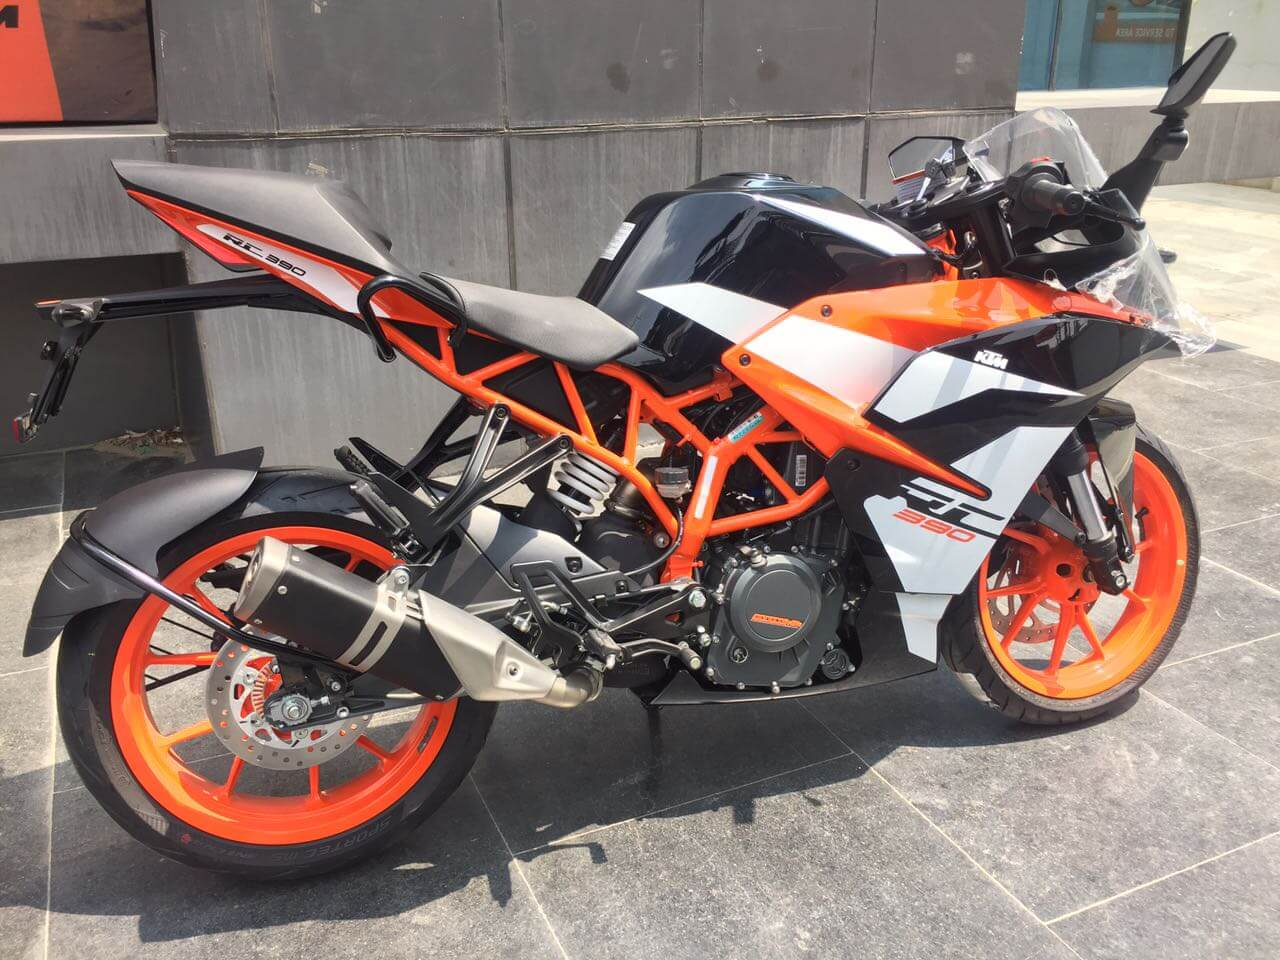 2017 ktm rc 390 test drive review super sport bike of the year motorbikes india. Black Bedroom Furniture Sets. Home Design Ideas